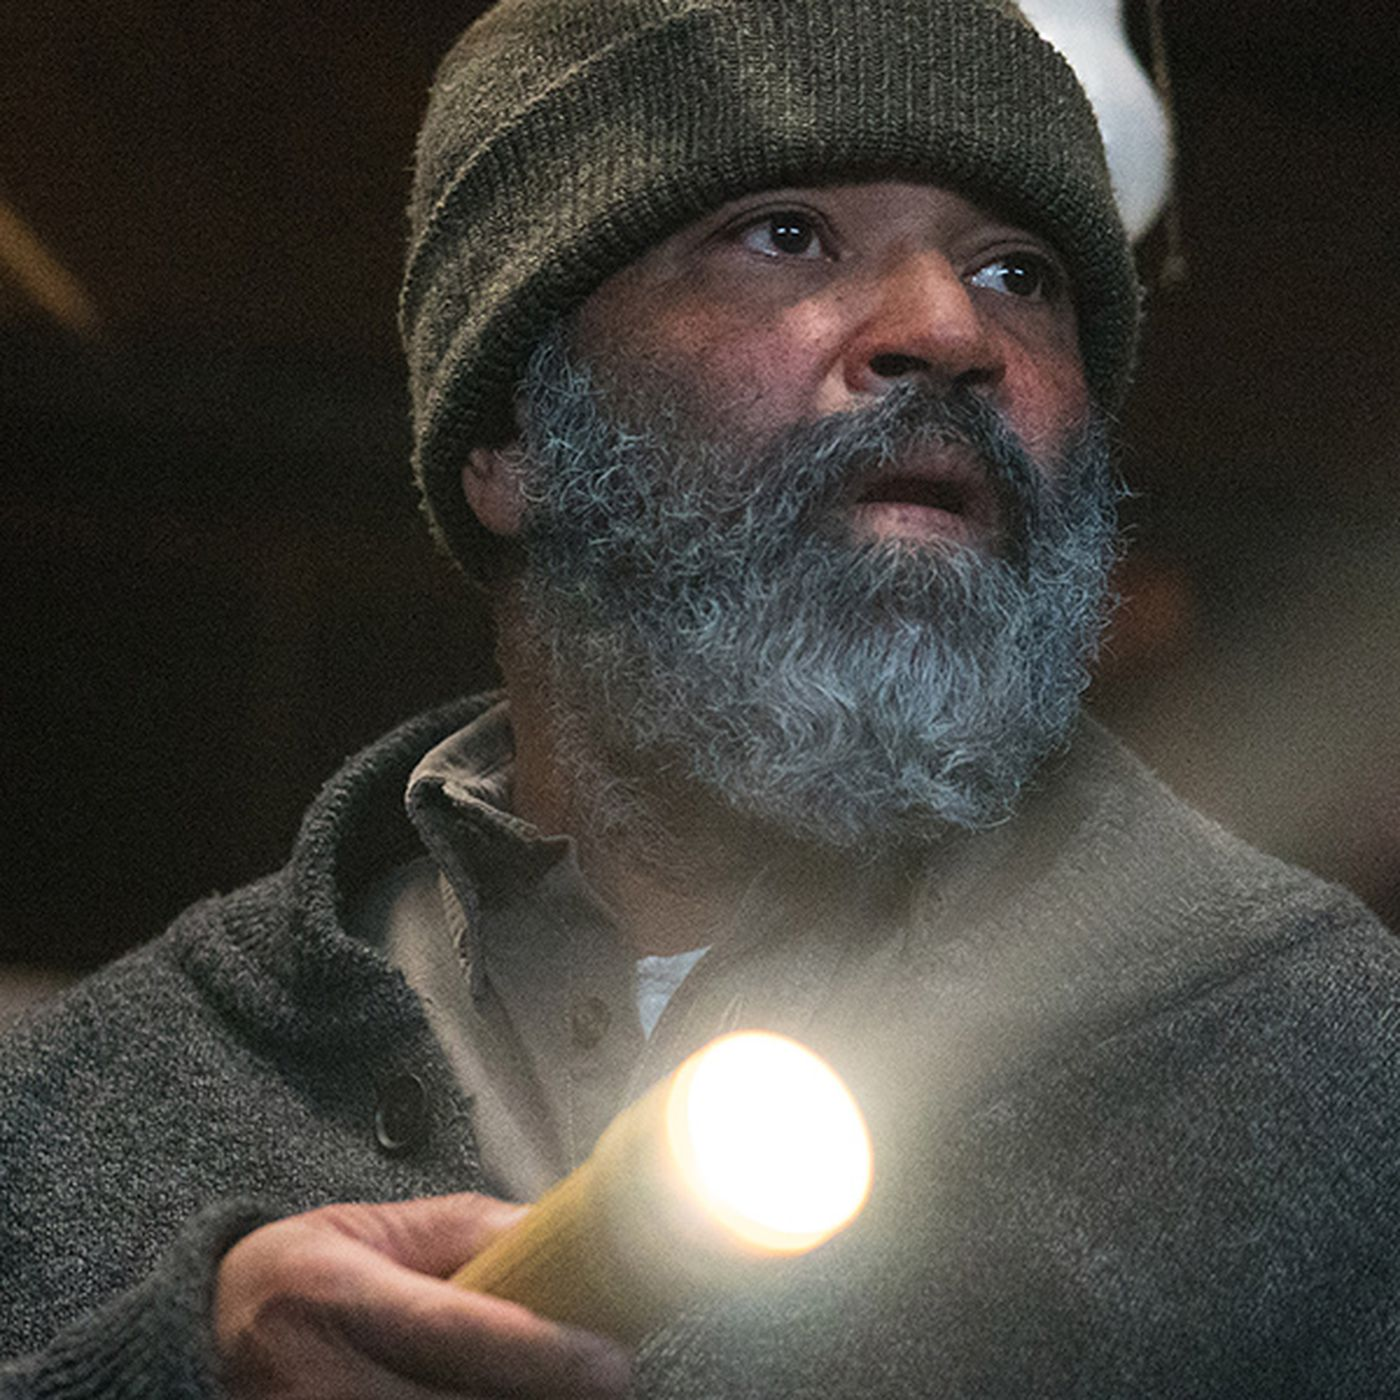 7470d7ec0d3 Netflix s Hold the Dark throws Jeffrey Wright to the wolves - The Verge